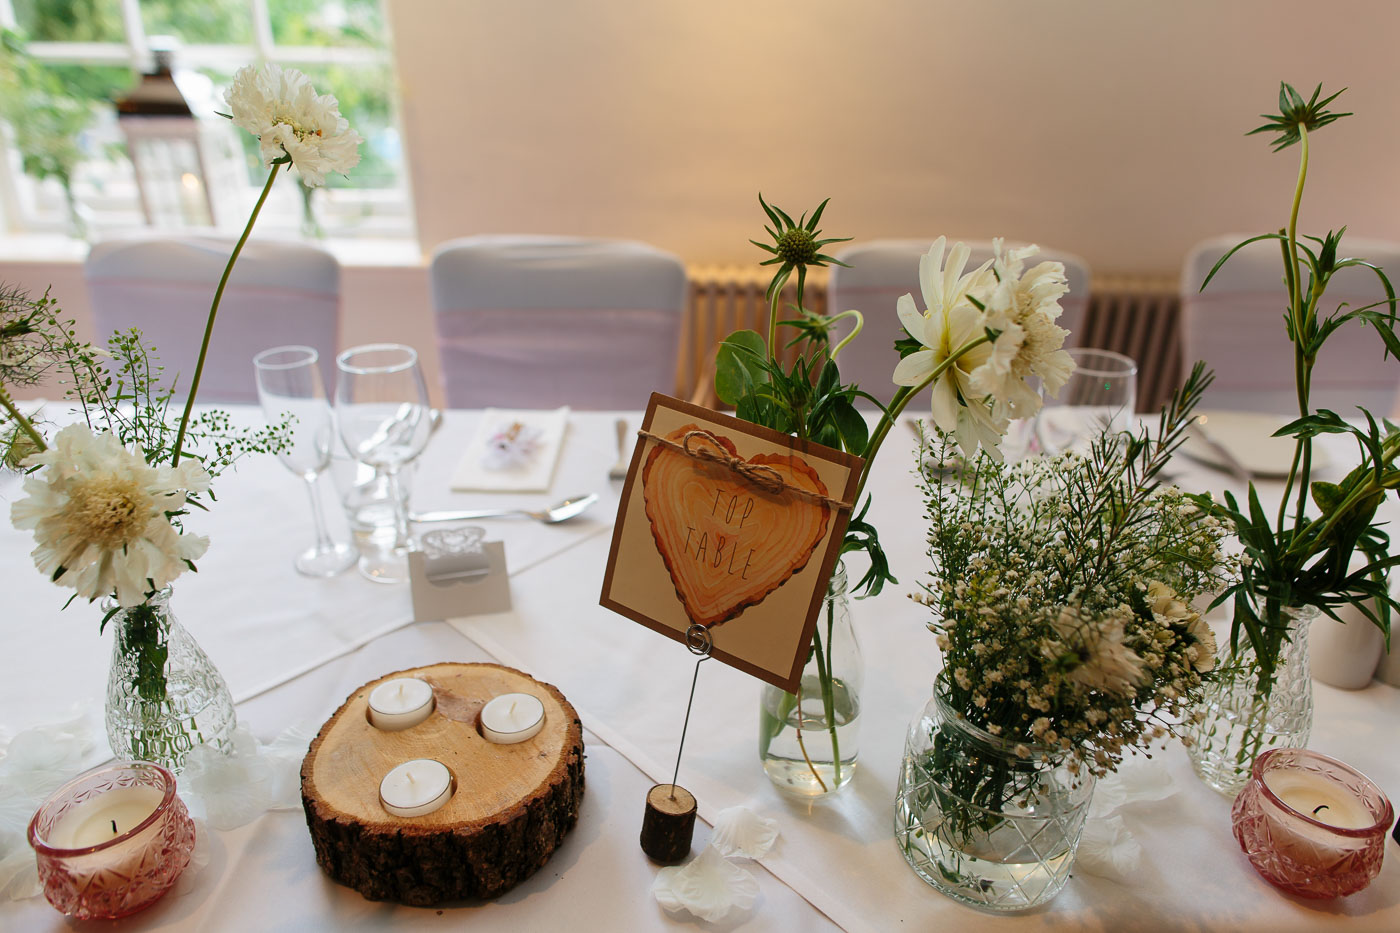 Rustic wedding table details